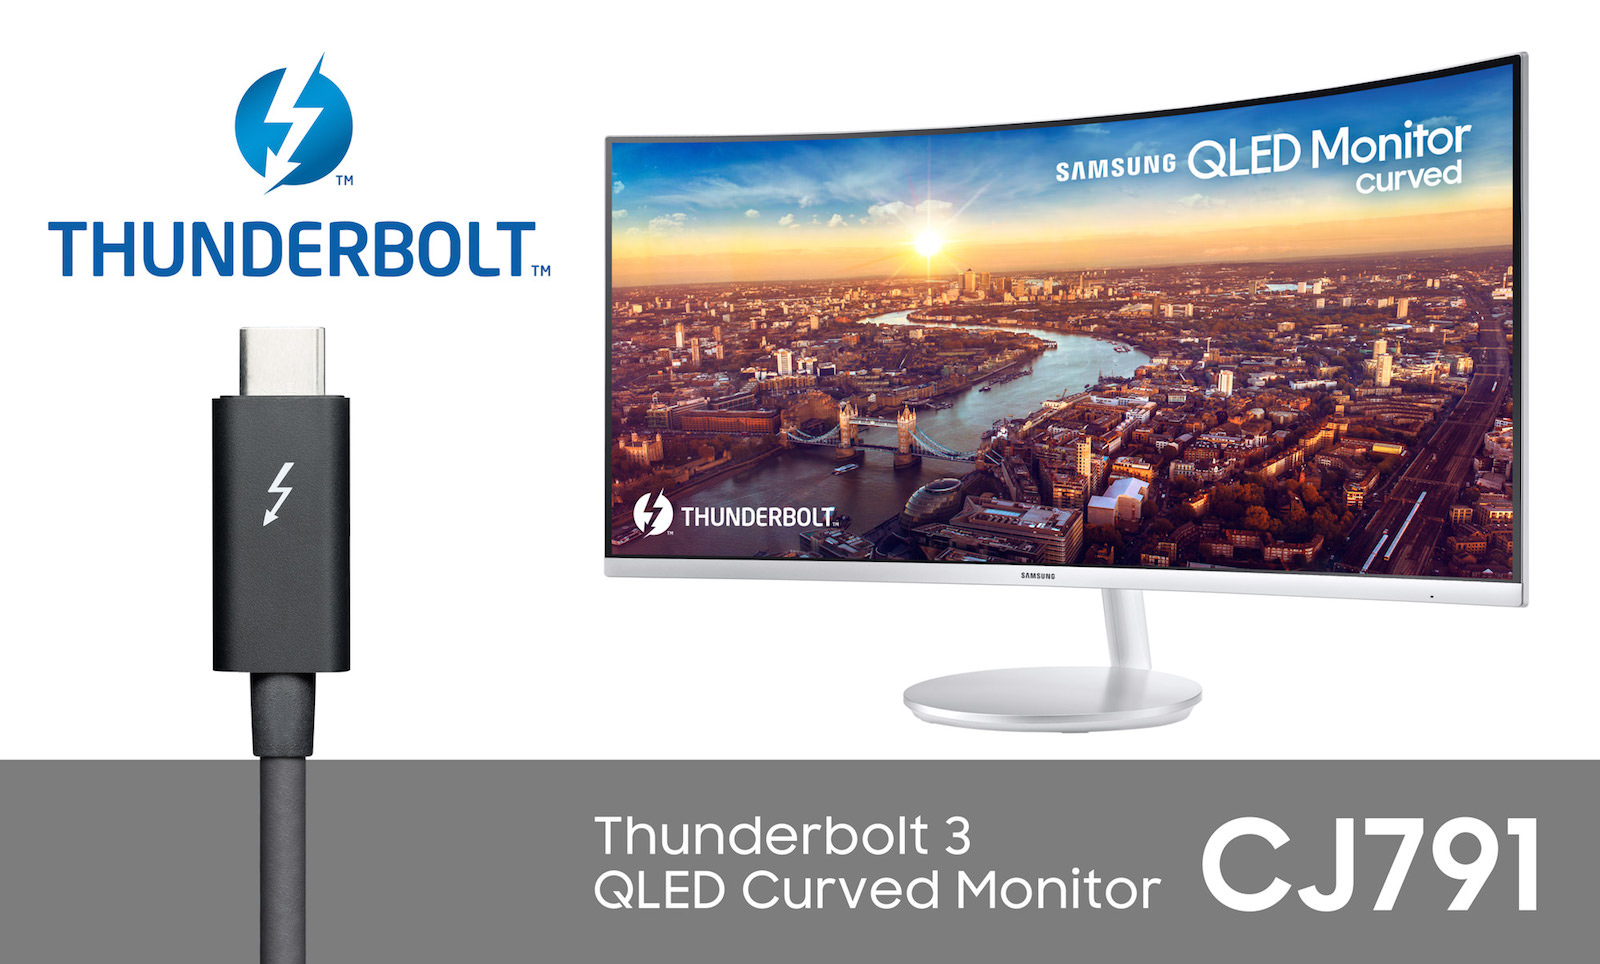 CJ791 Thunderbolt 3 QLED Curved Monitor 3